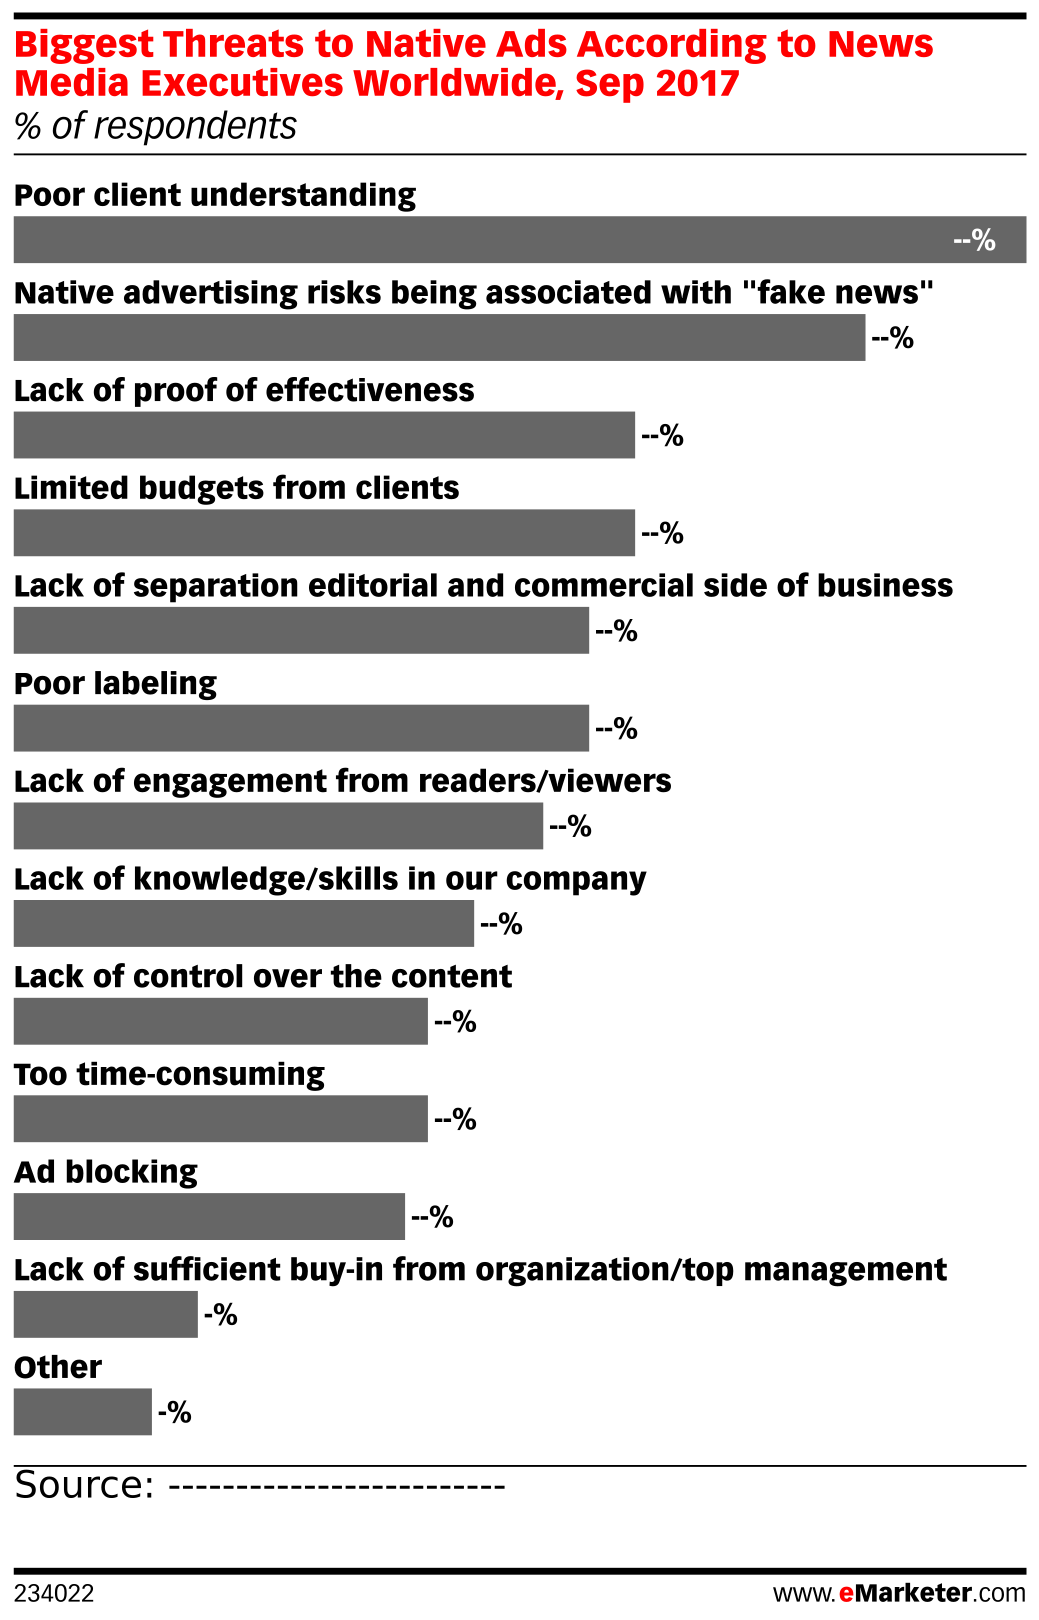 Biggest Threats to Native Ads According to News Media Executives Worldwide, Sep 2017 (% of respondents)